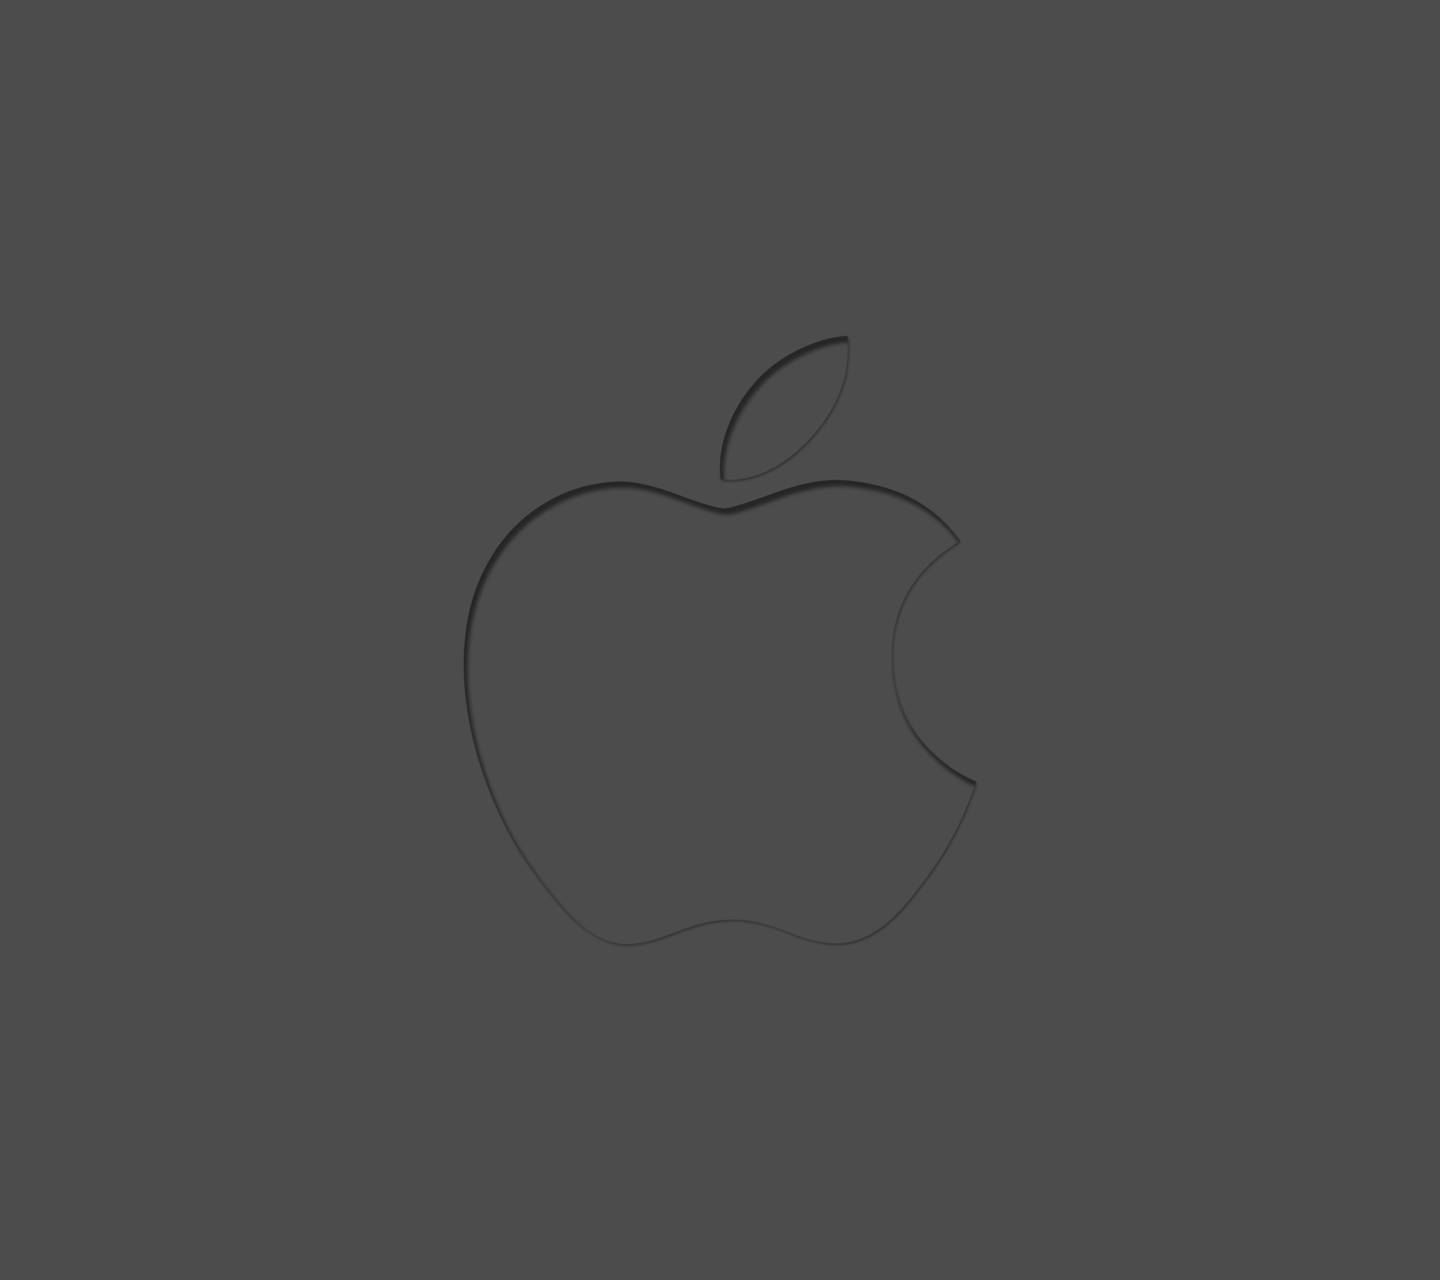 minimal apple logo